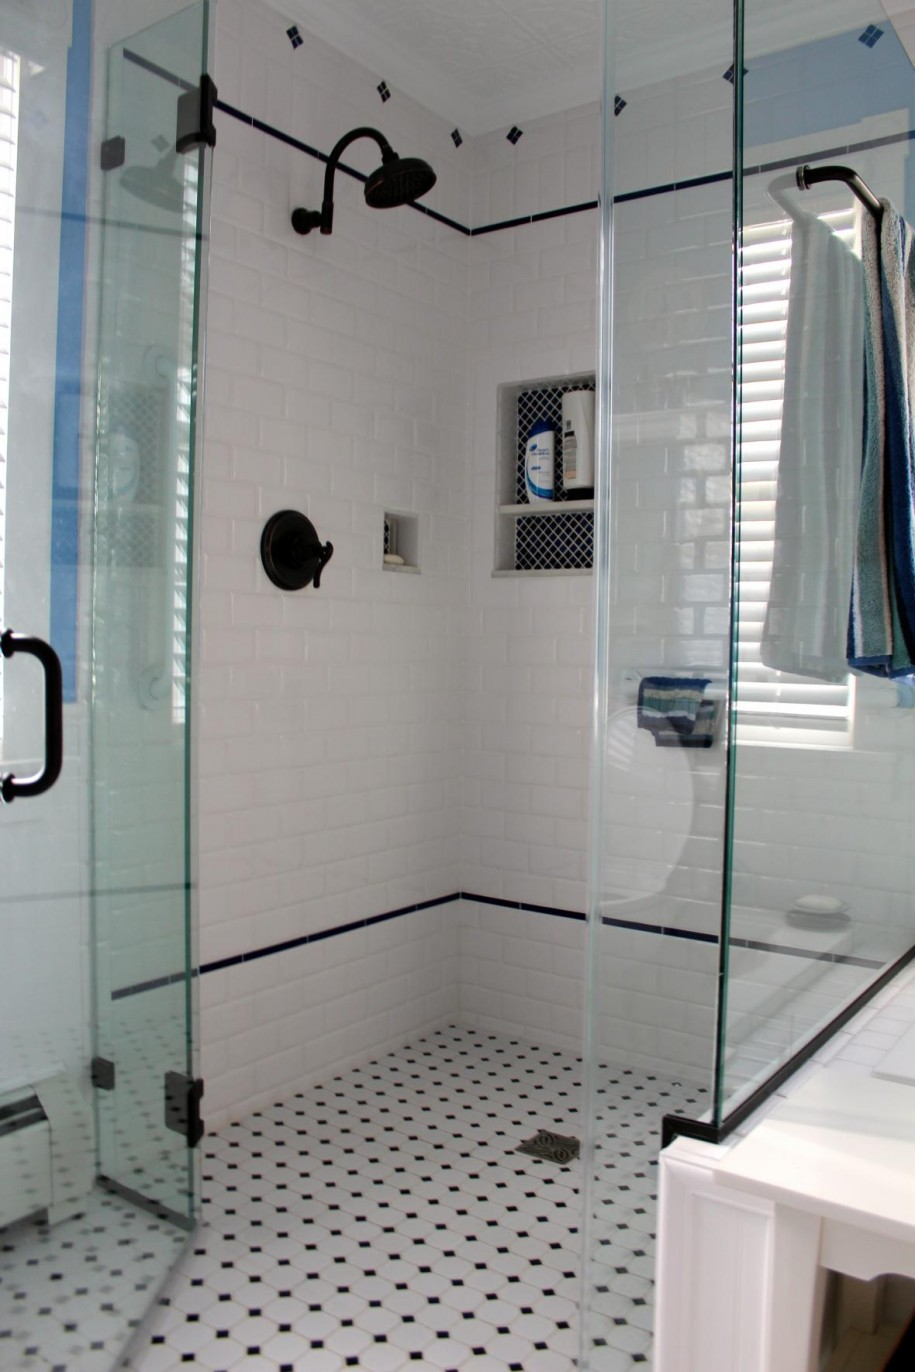 Bathroom Tiled Shower Design Ideas ~ Magnificent pictures of retro bathroom tile design ideas